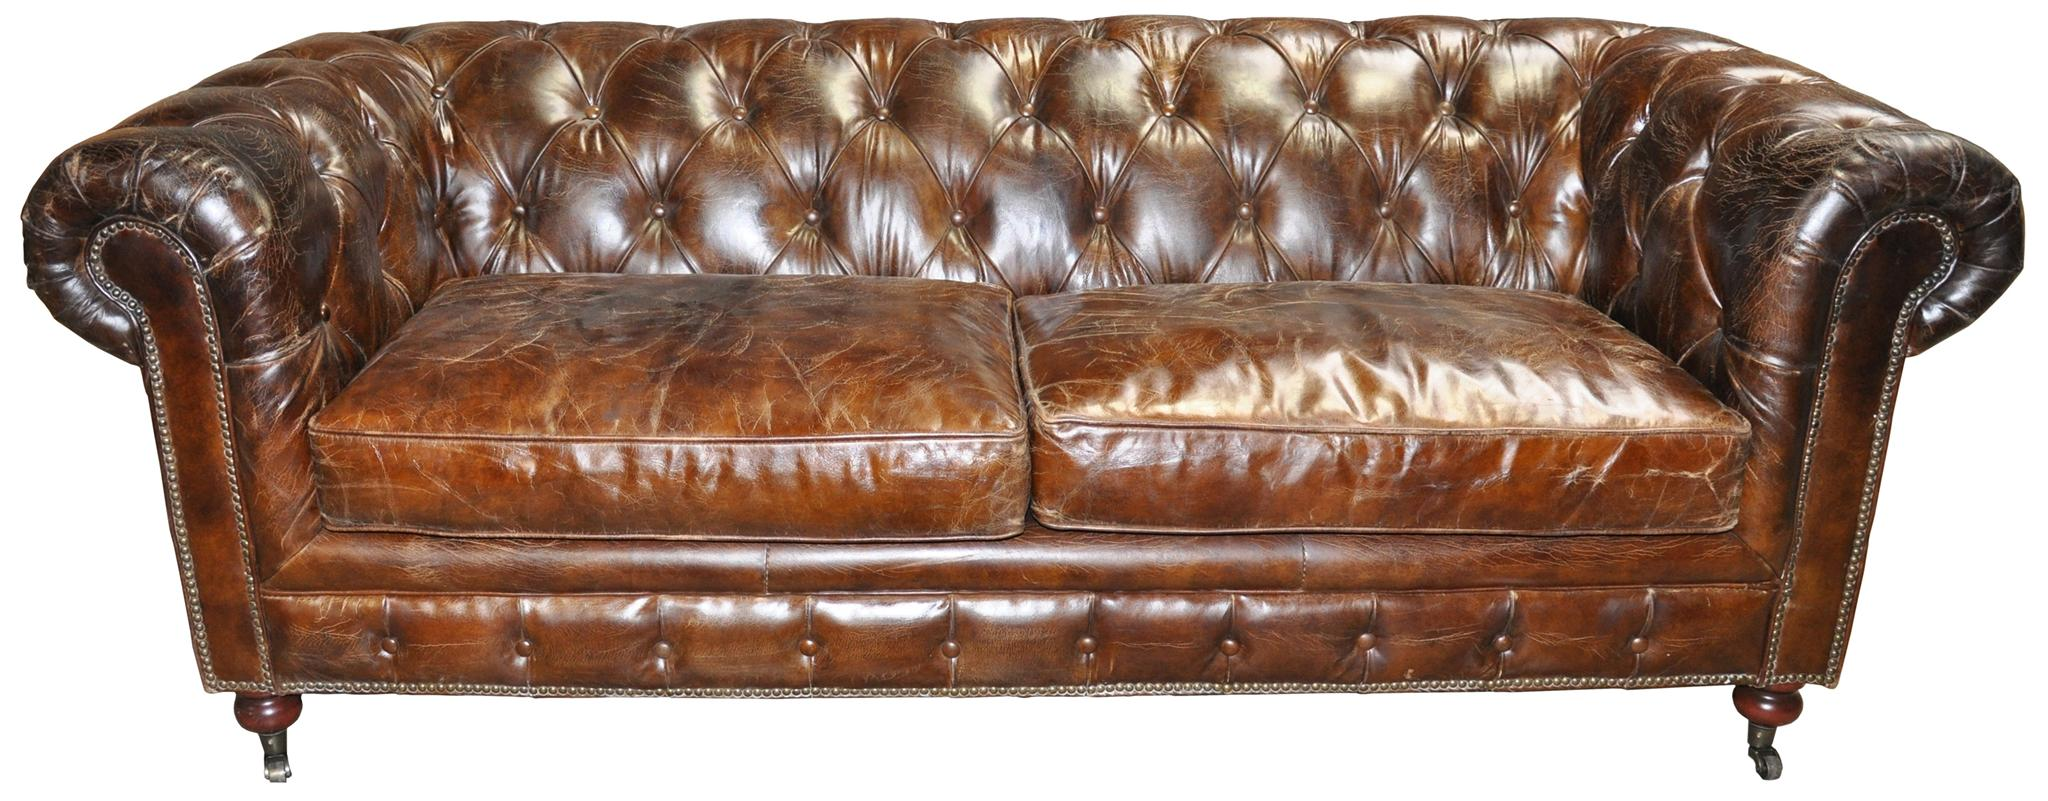 tufted sofa leather berwick 88 leather tufted sofa in bull grey sofas gray within thesofa. Black Bedroom Furniture Sets. Home Design Ideas